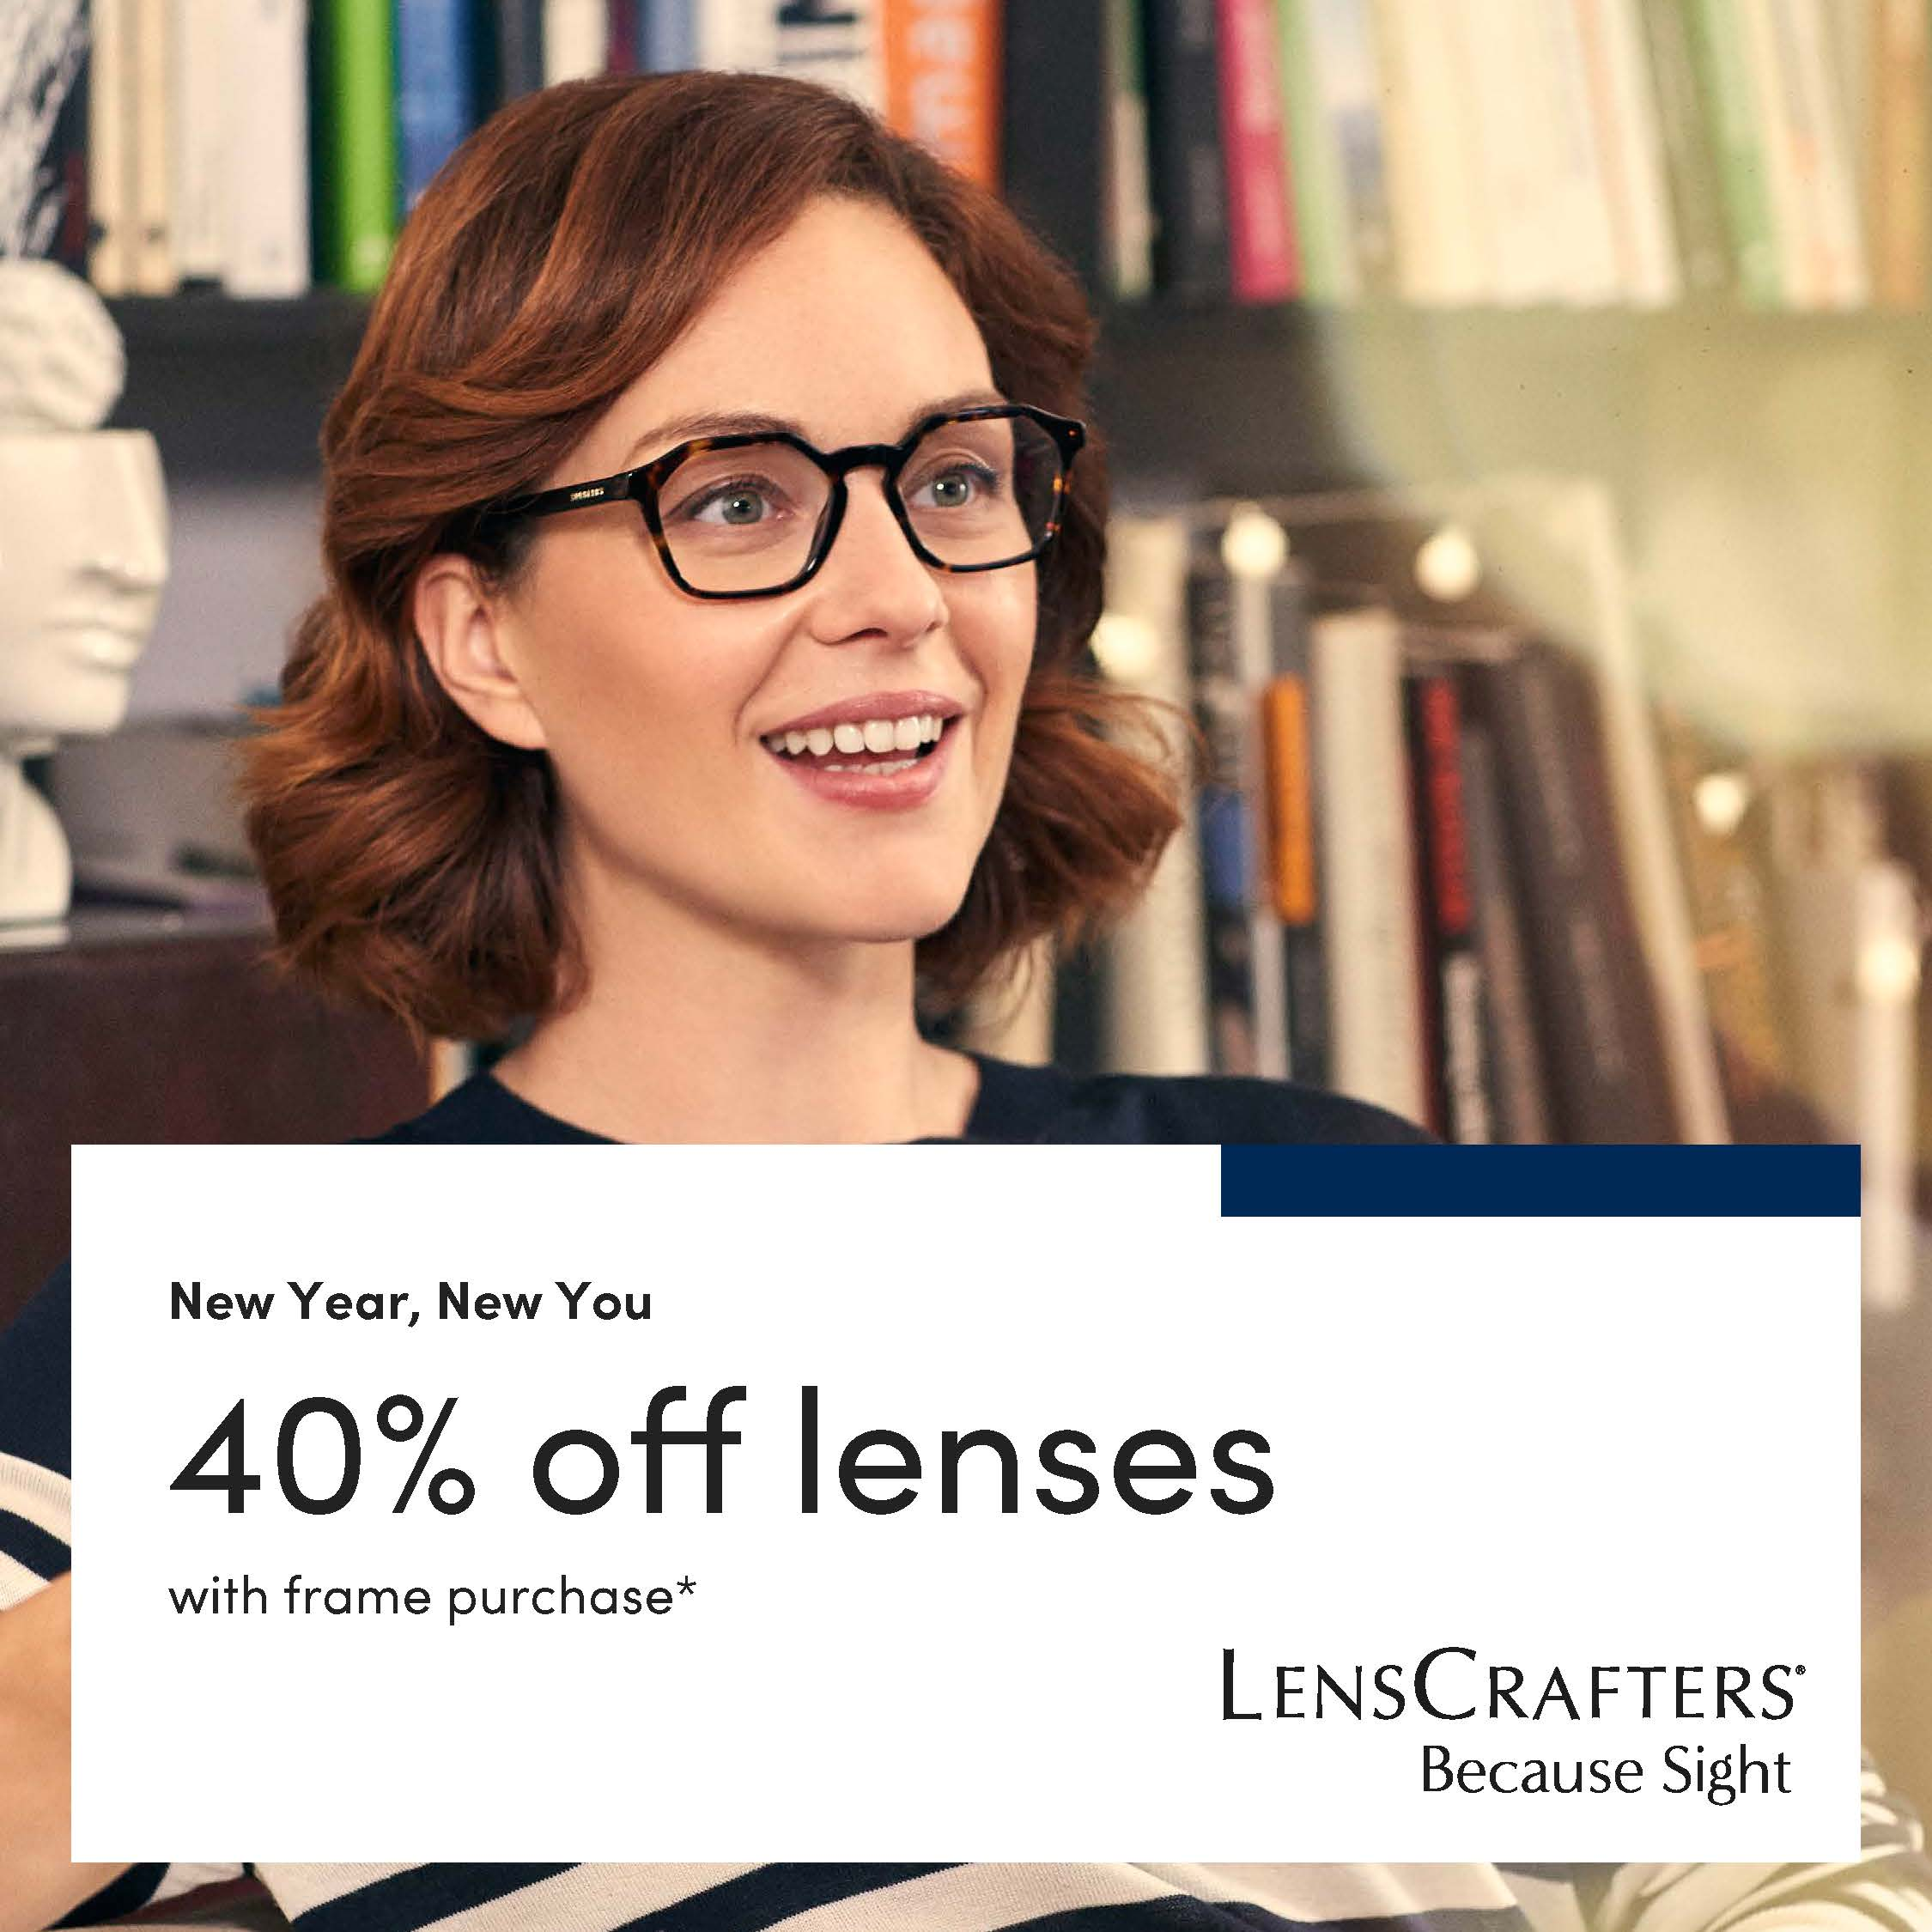 New Year, New You! 40% Off Lenses from LensCrafters